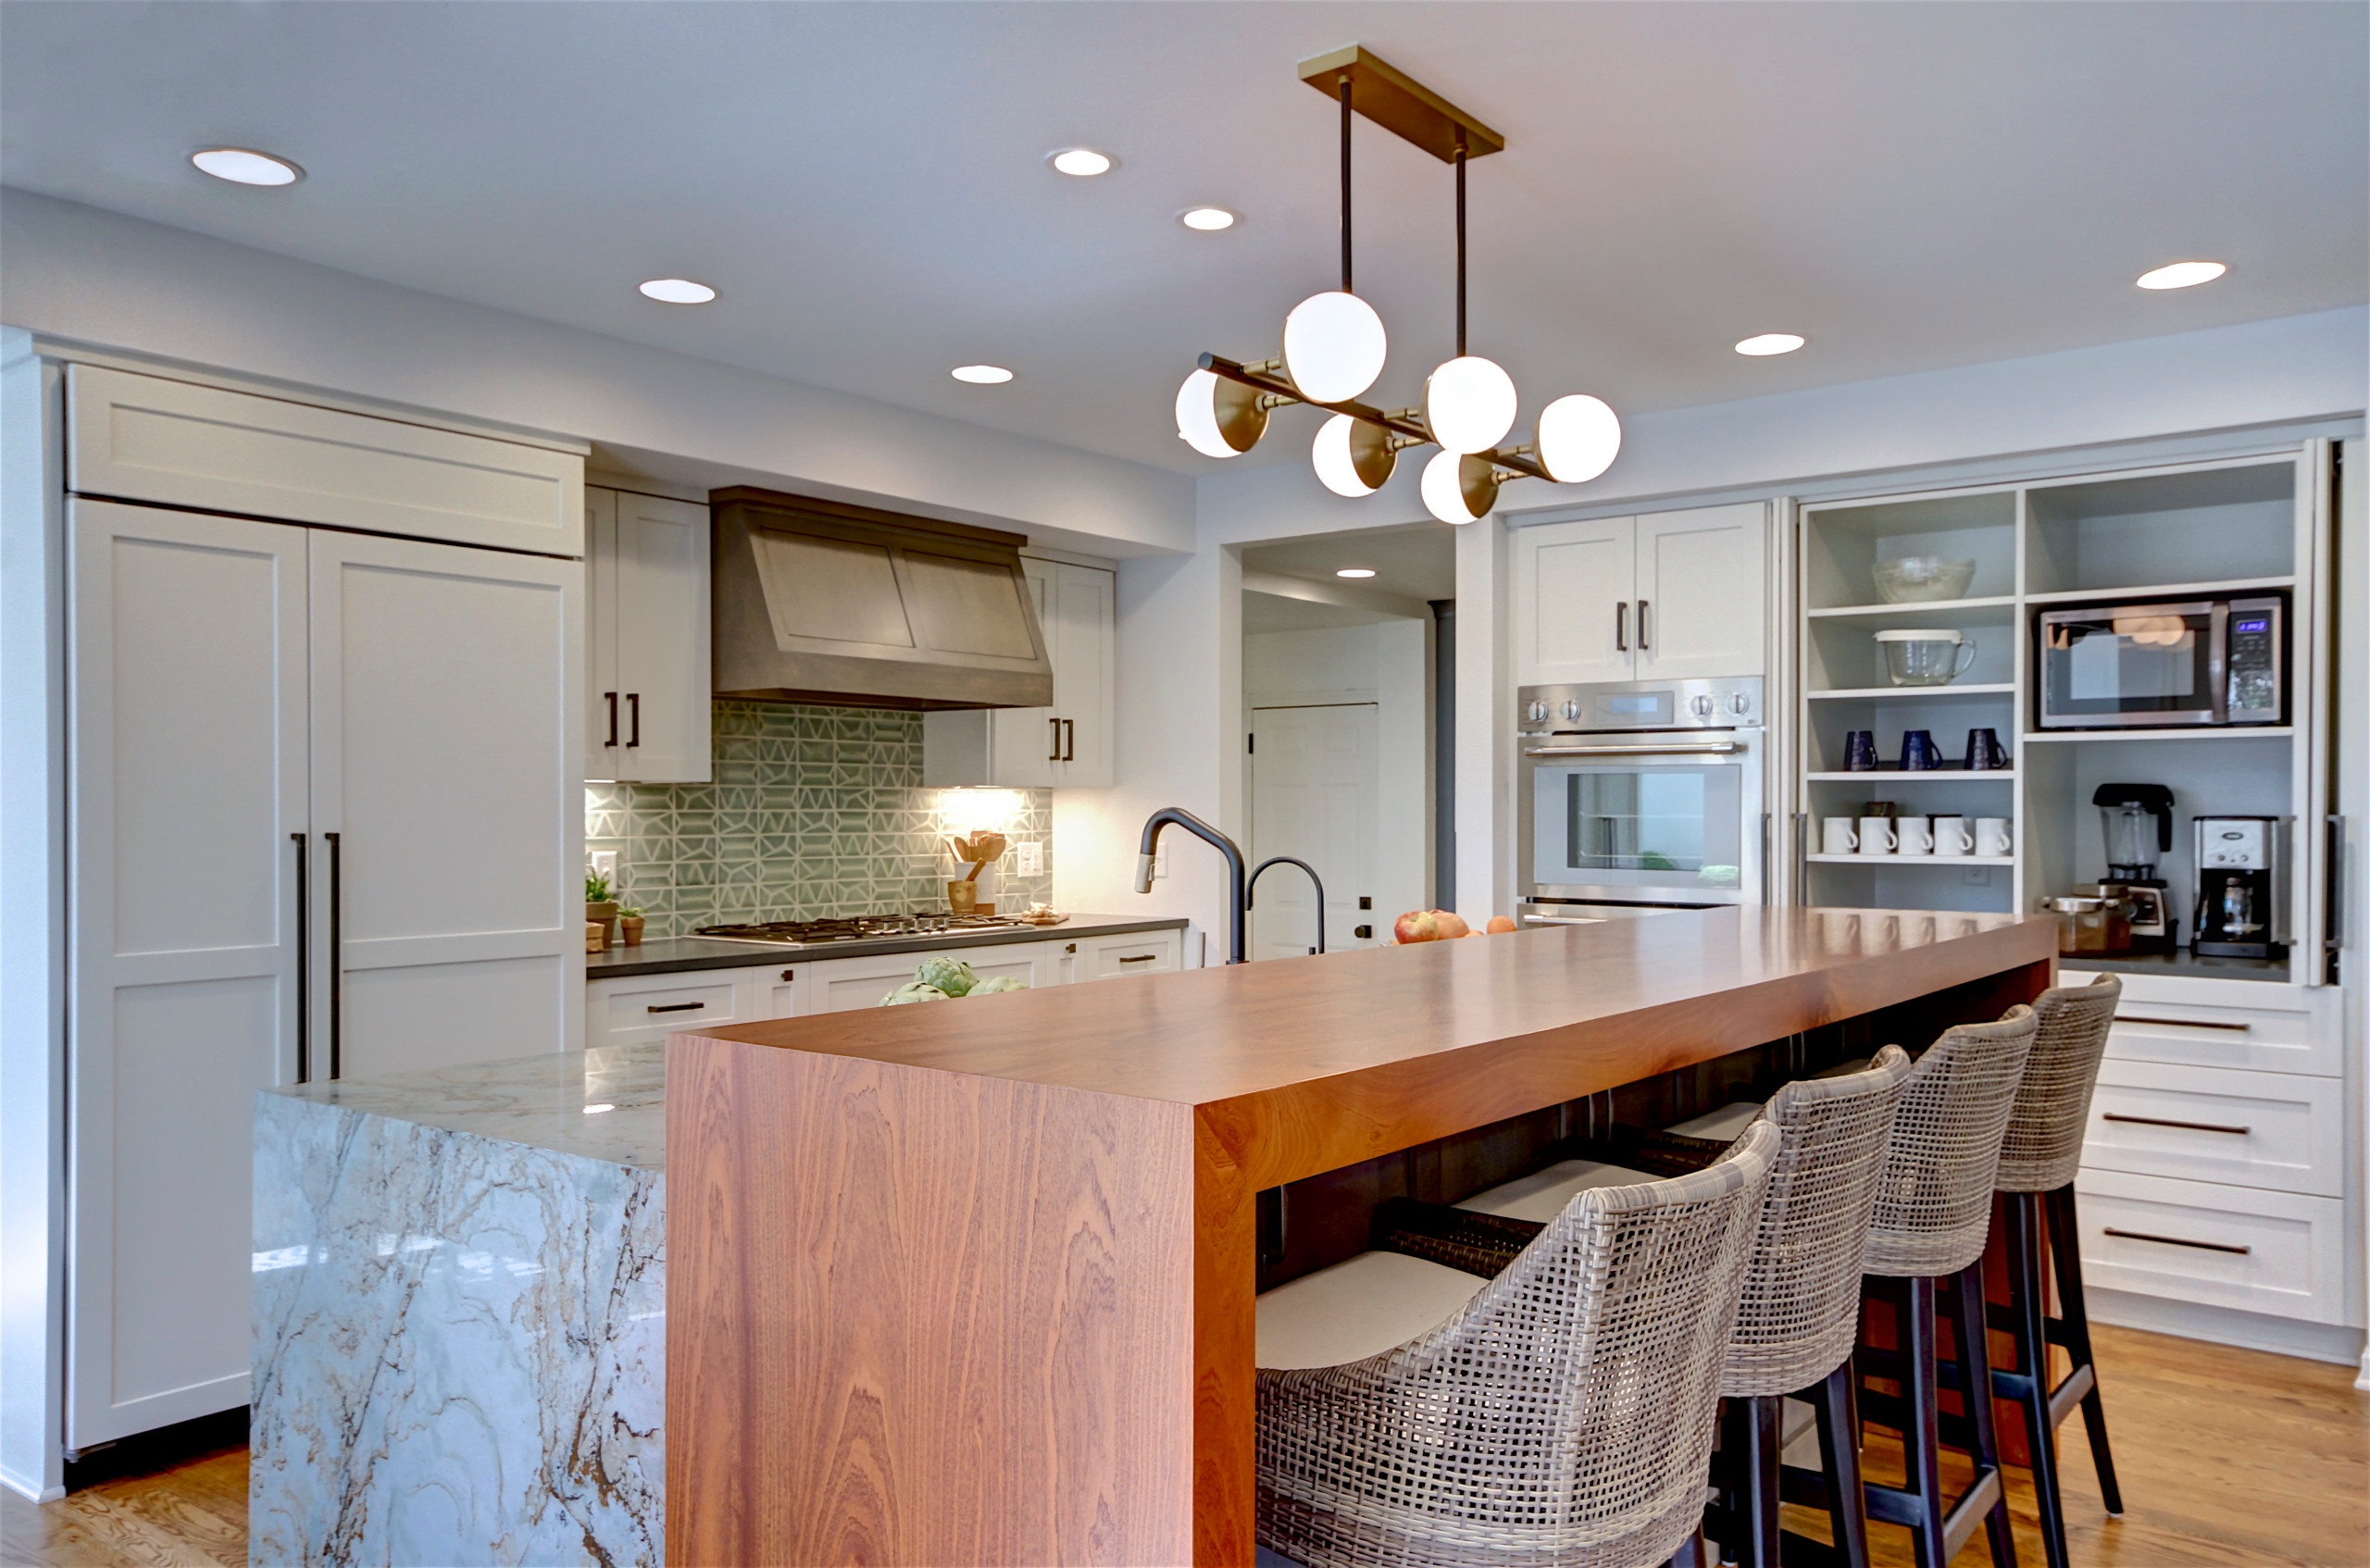 75 Beautiful Transitional Kitchen Pictures Ideas February 2021 Houzz